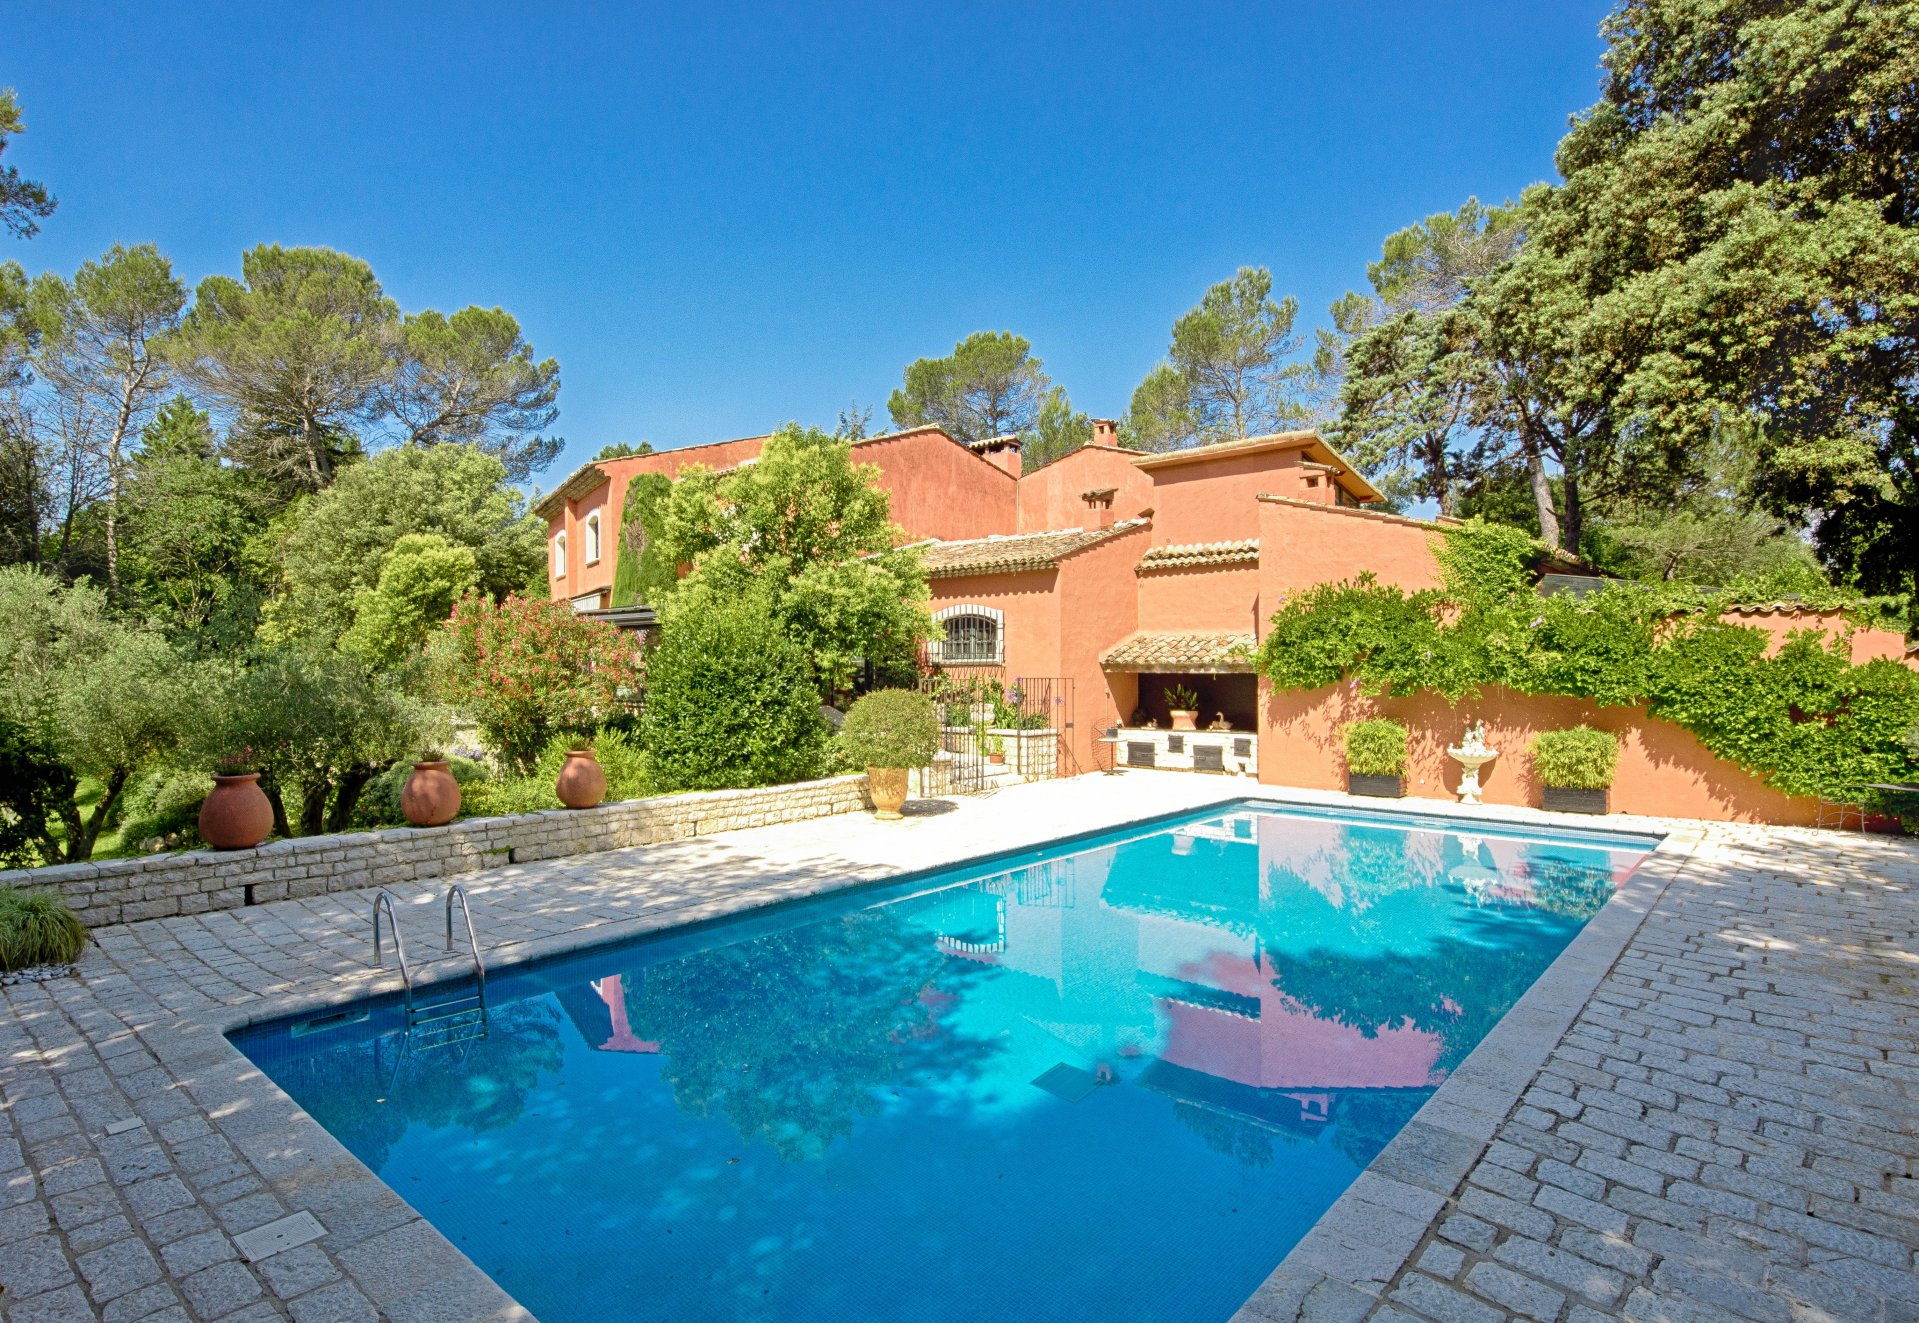 MOUGINS - SPLENDID REFINED TUSCAN INSPIRED VILLA